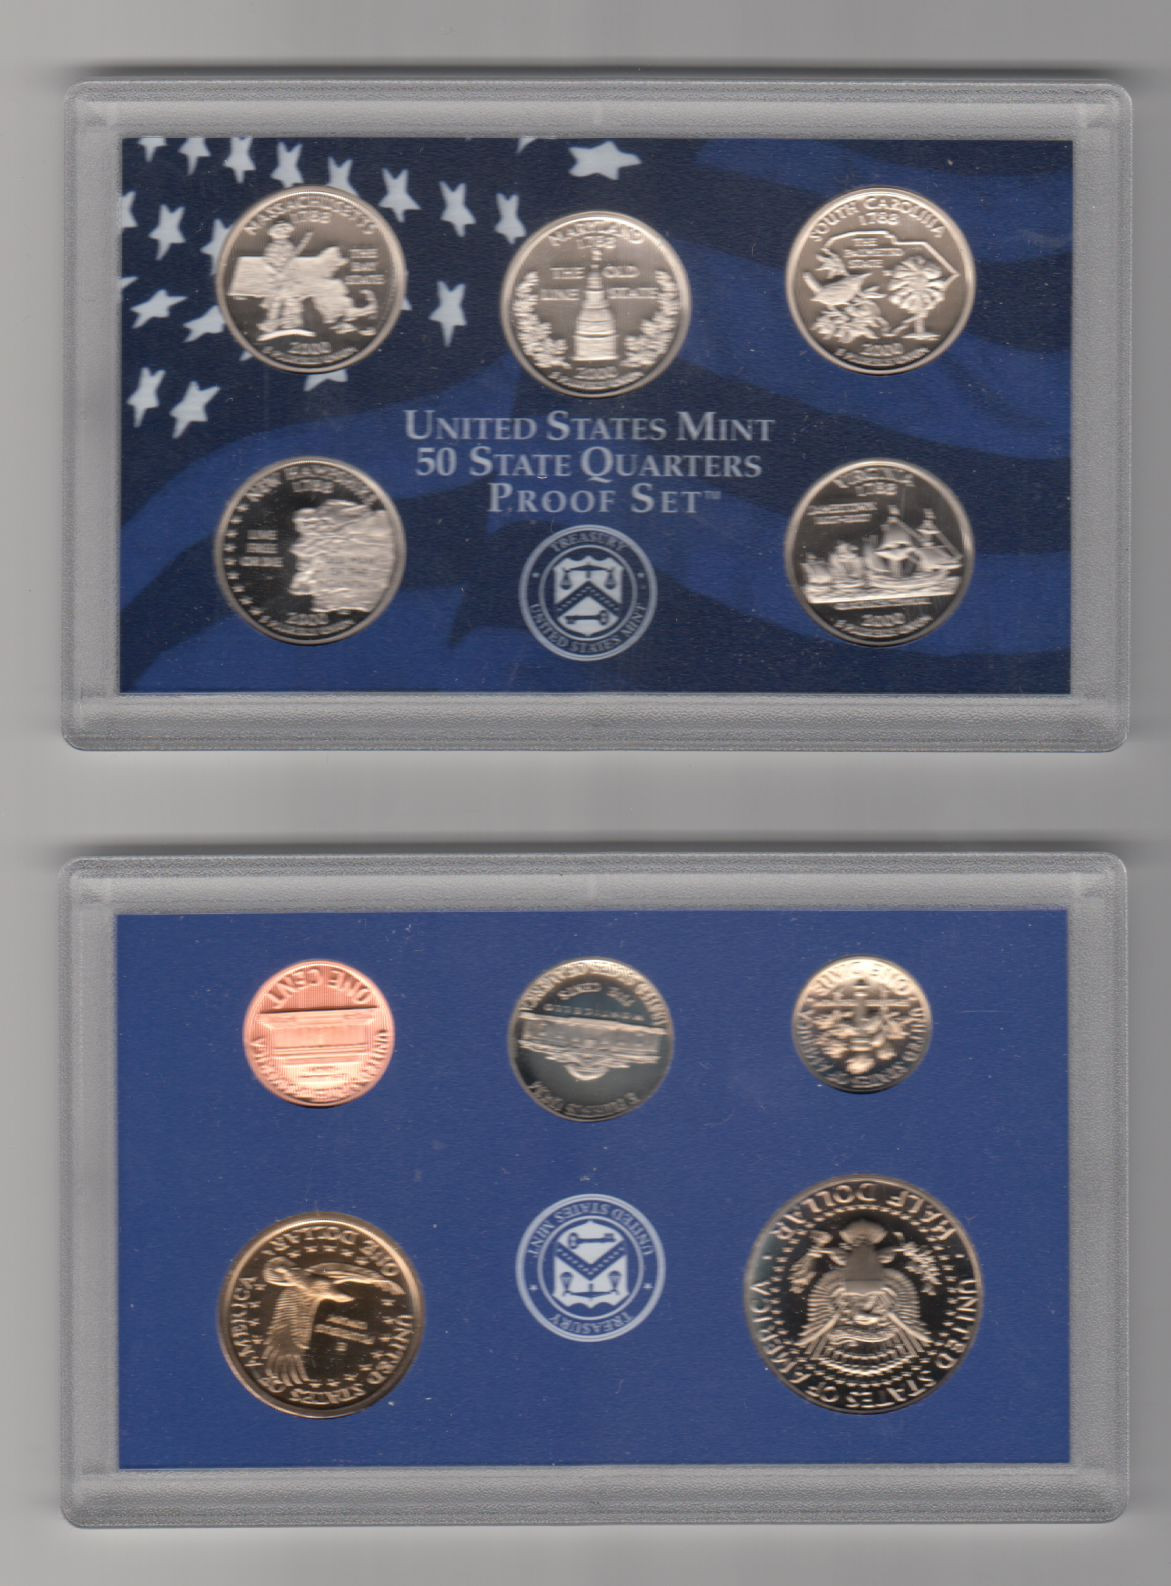 Awesome 10 Coins 50 State Quarters Proof Set Us Mint 2000 State Quarter Set Value Of New Washington 50 State Quarters Program 1999 2008 State Quarter Set Value